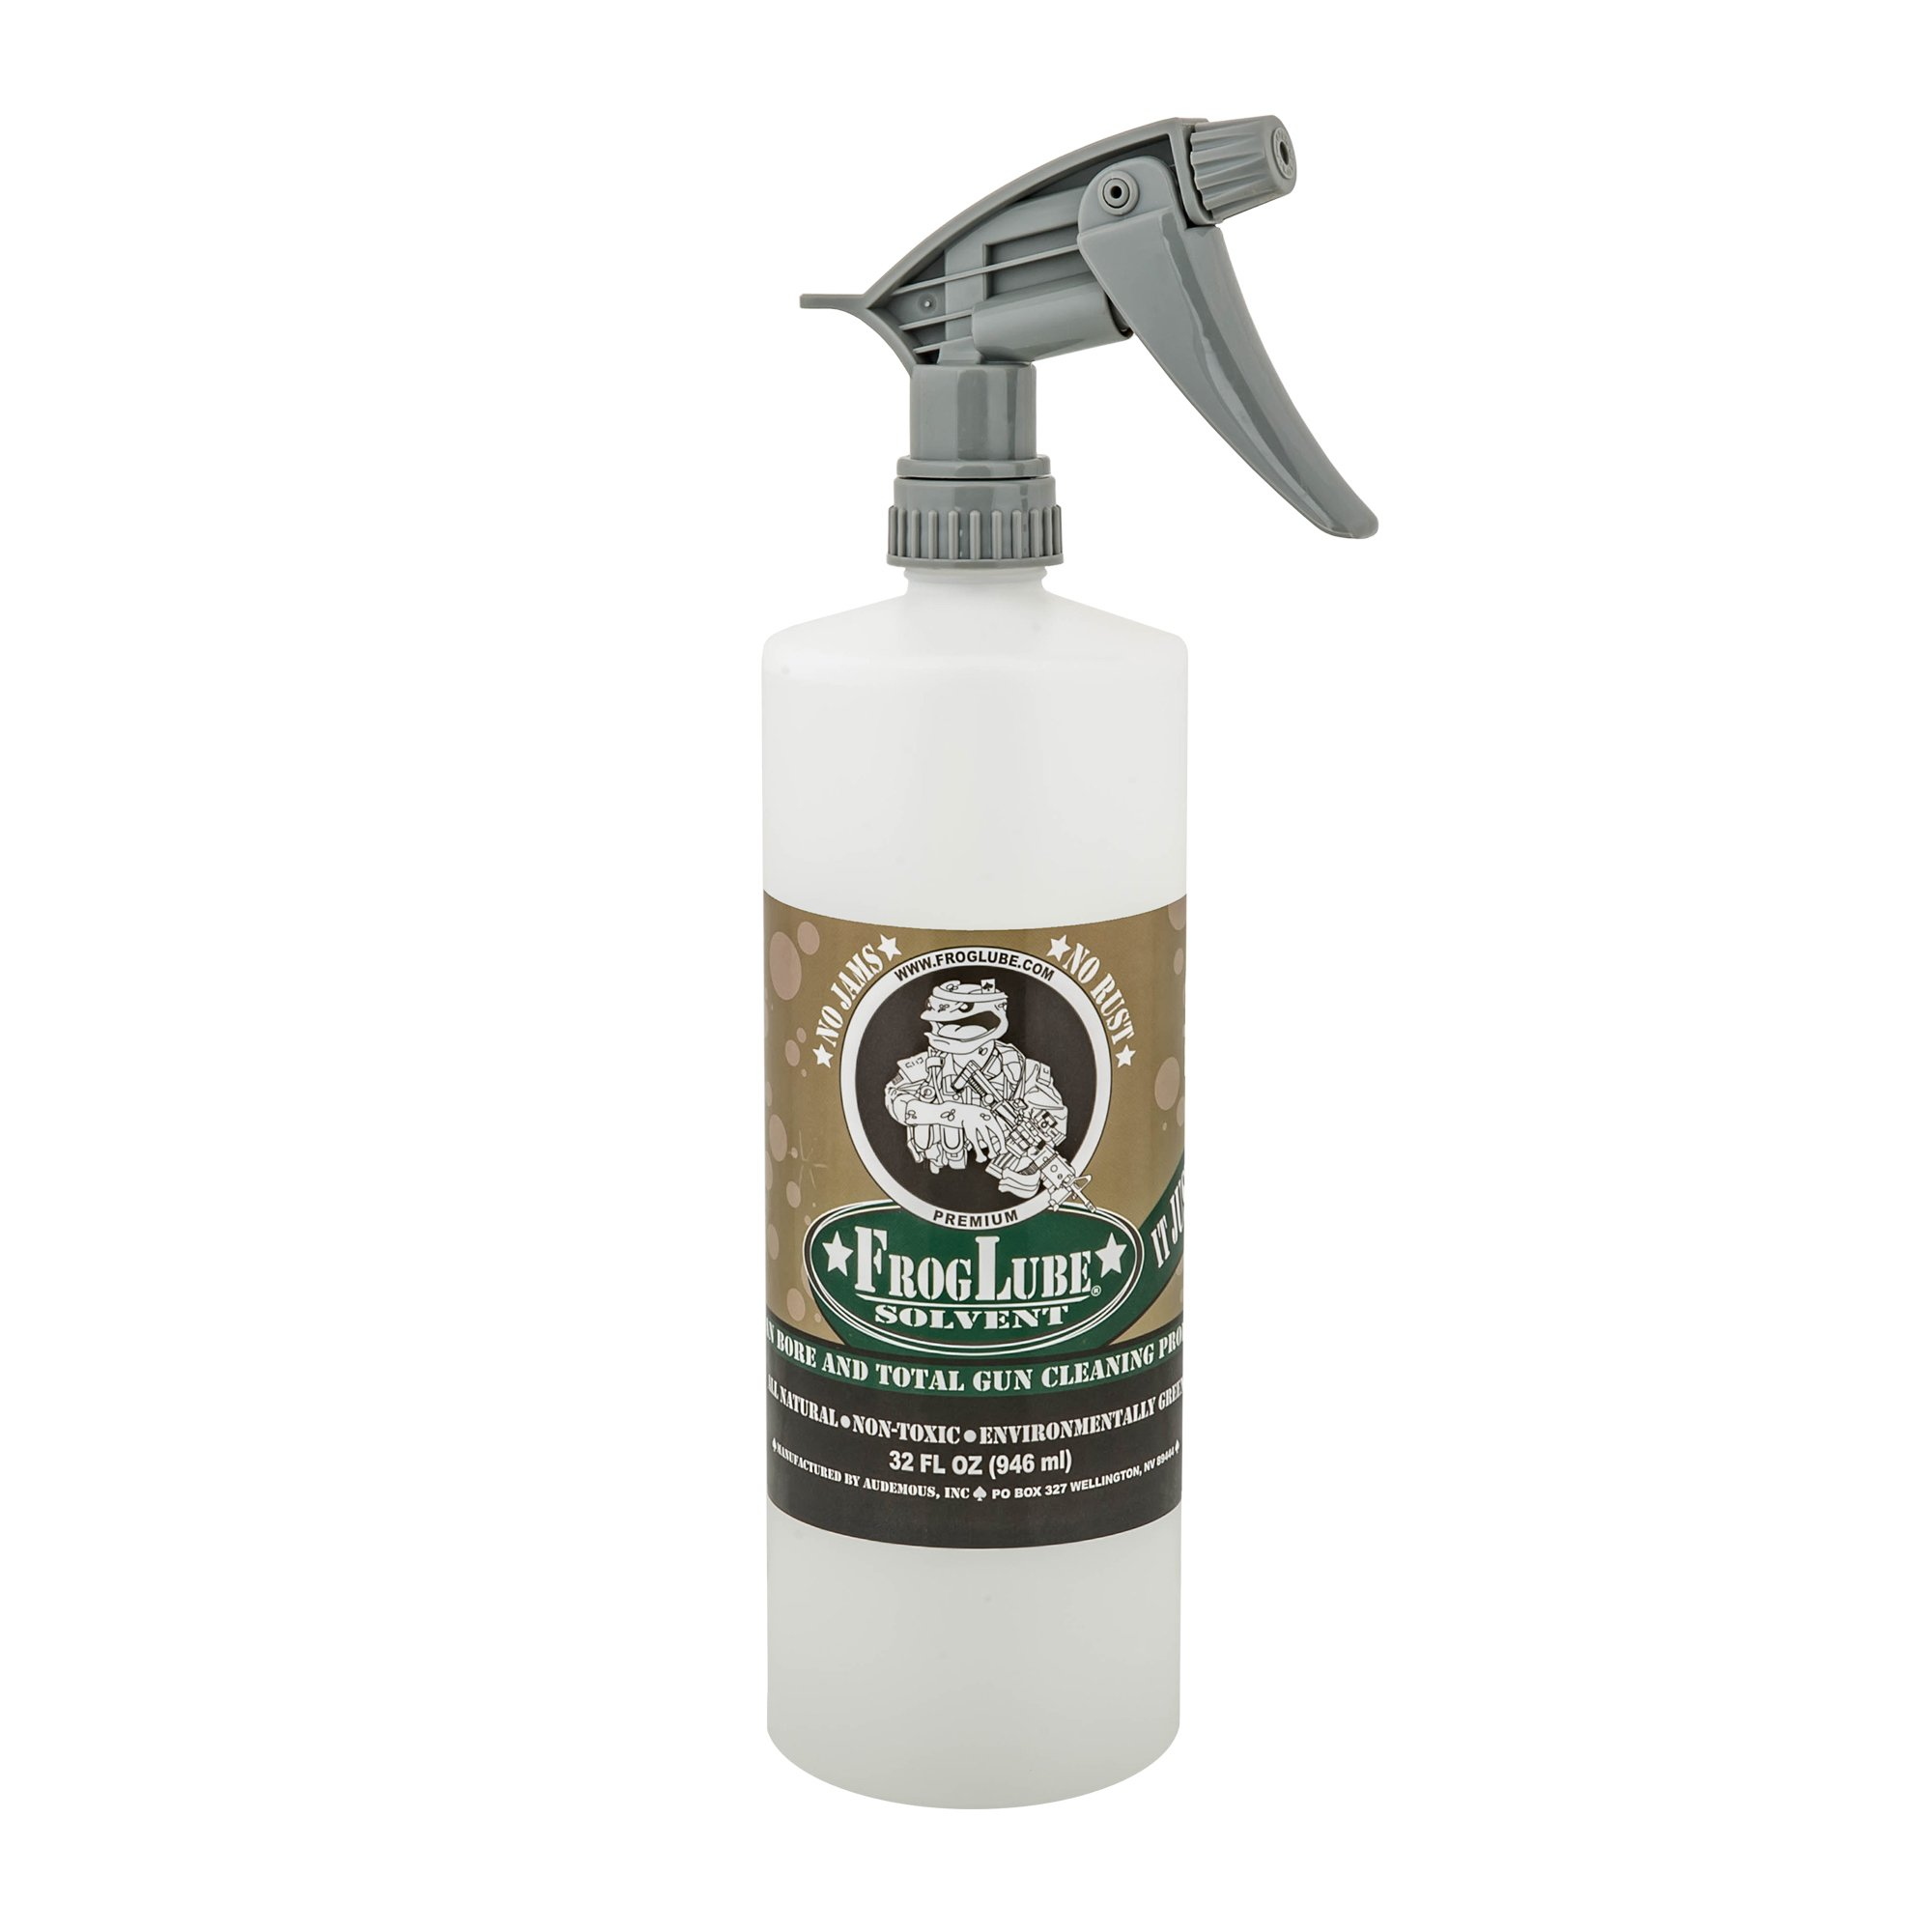 FrogLube Solvent 1 oz Pump Spray by Frog Lube